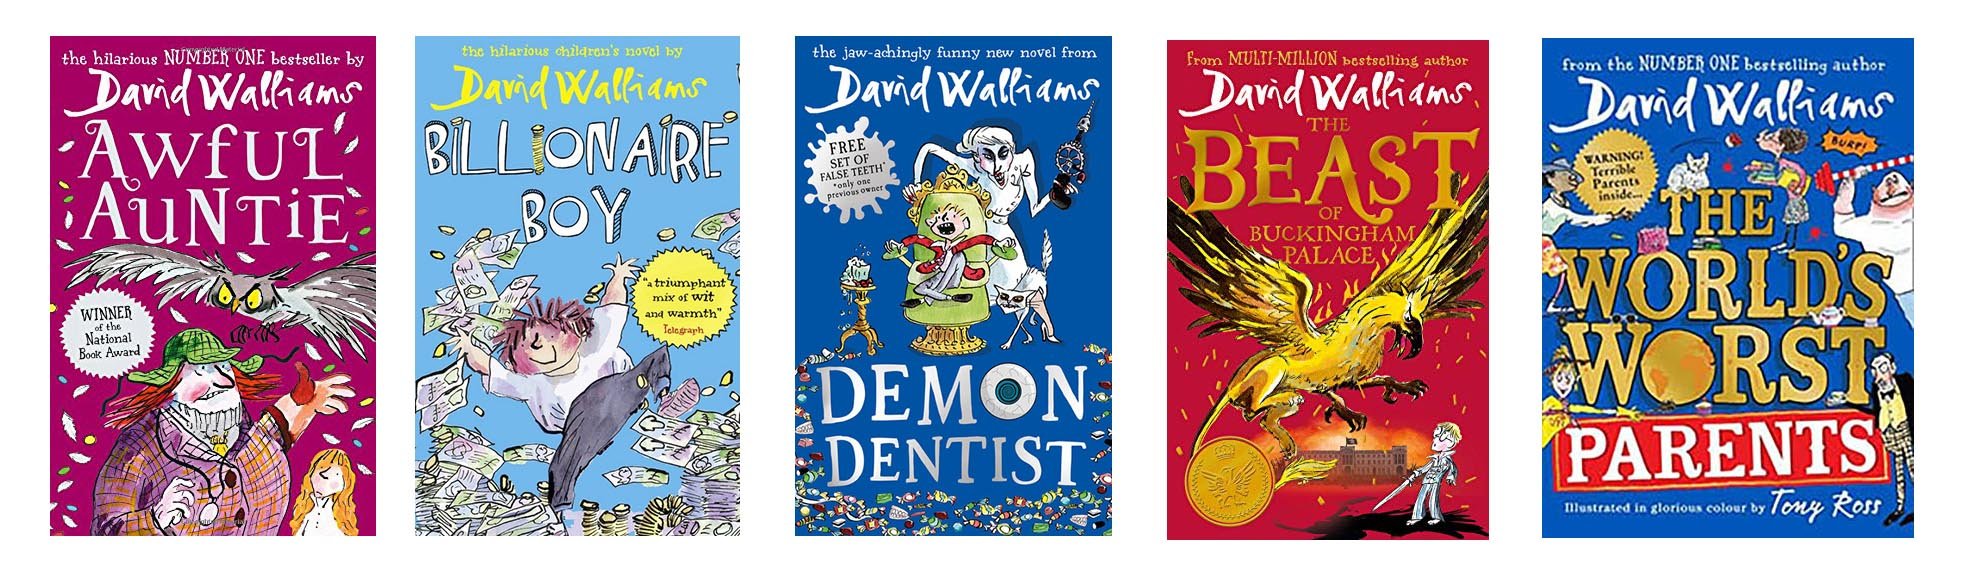 Image shows covers from David Walliam's books